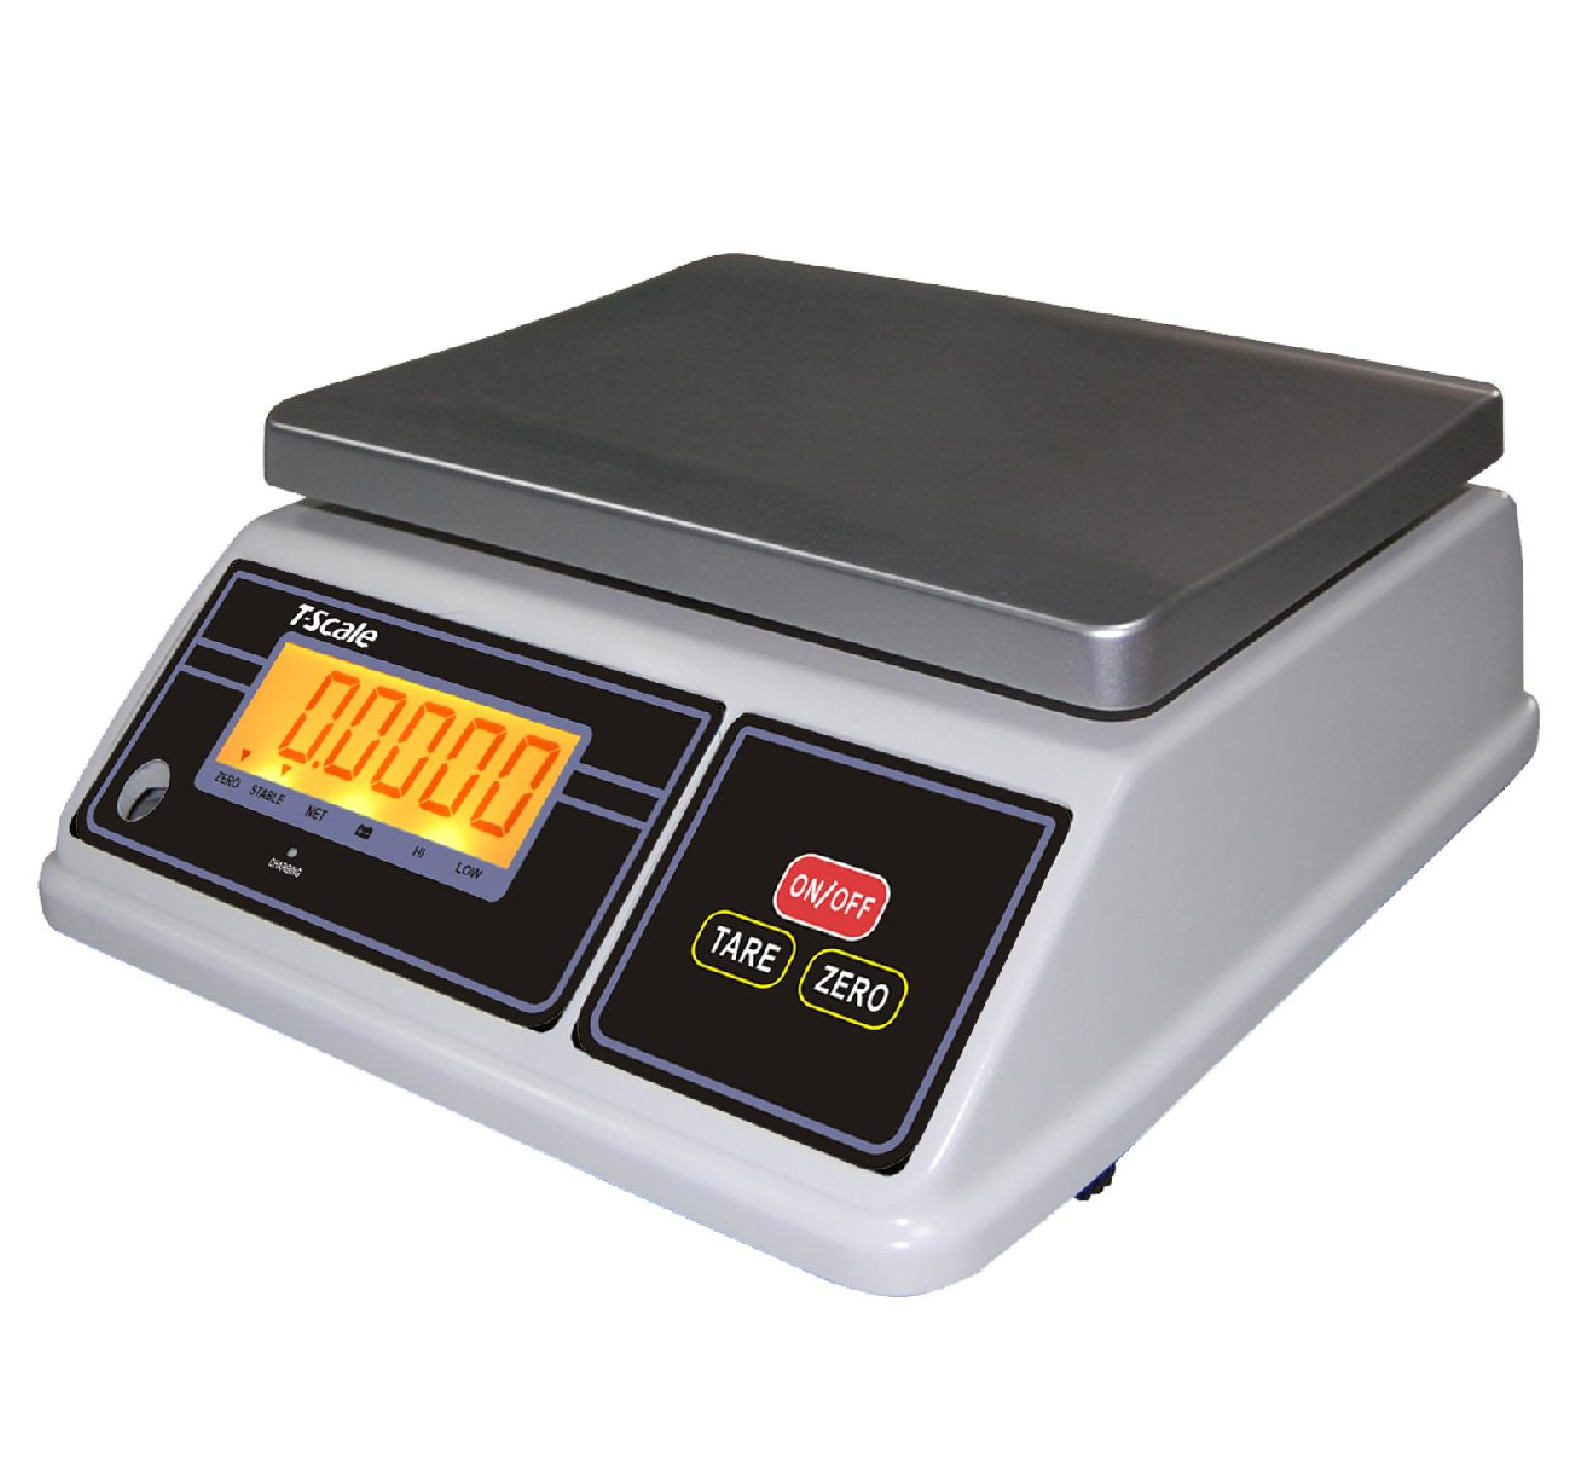 T-SCALE SW-III SERIES WATERPROOF CHECK-WEIGHING SCALE | weighingscales.com